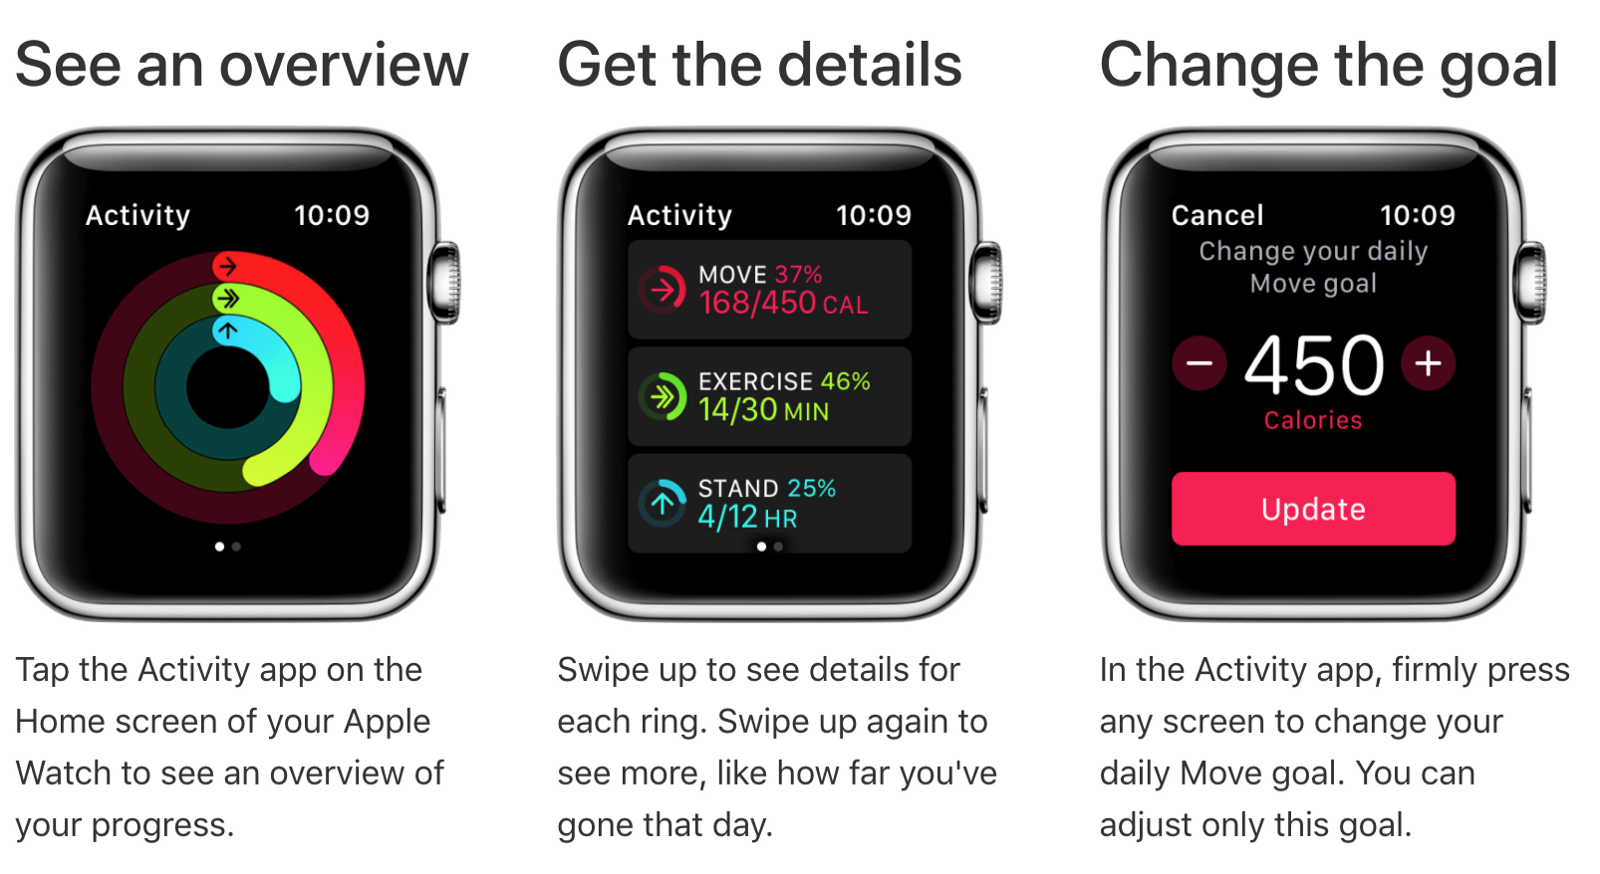 Apple Watch Activity Tracking Overview